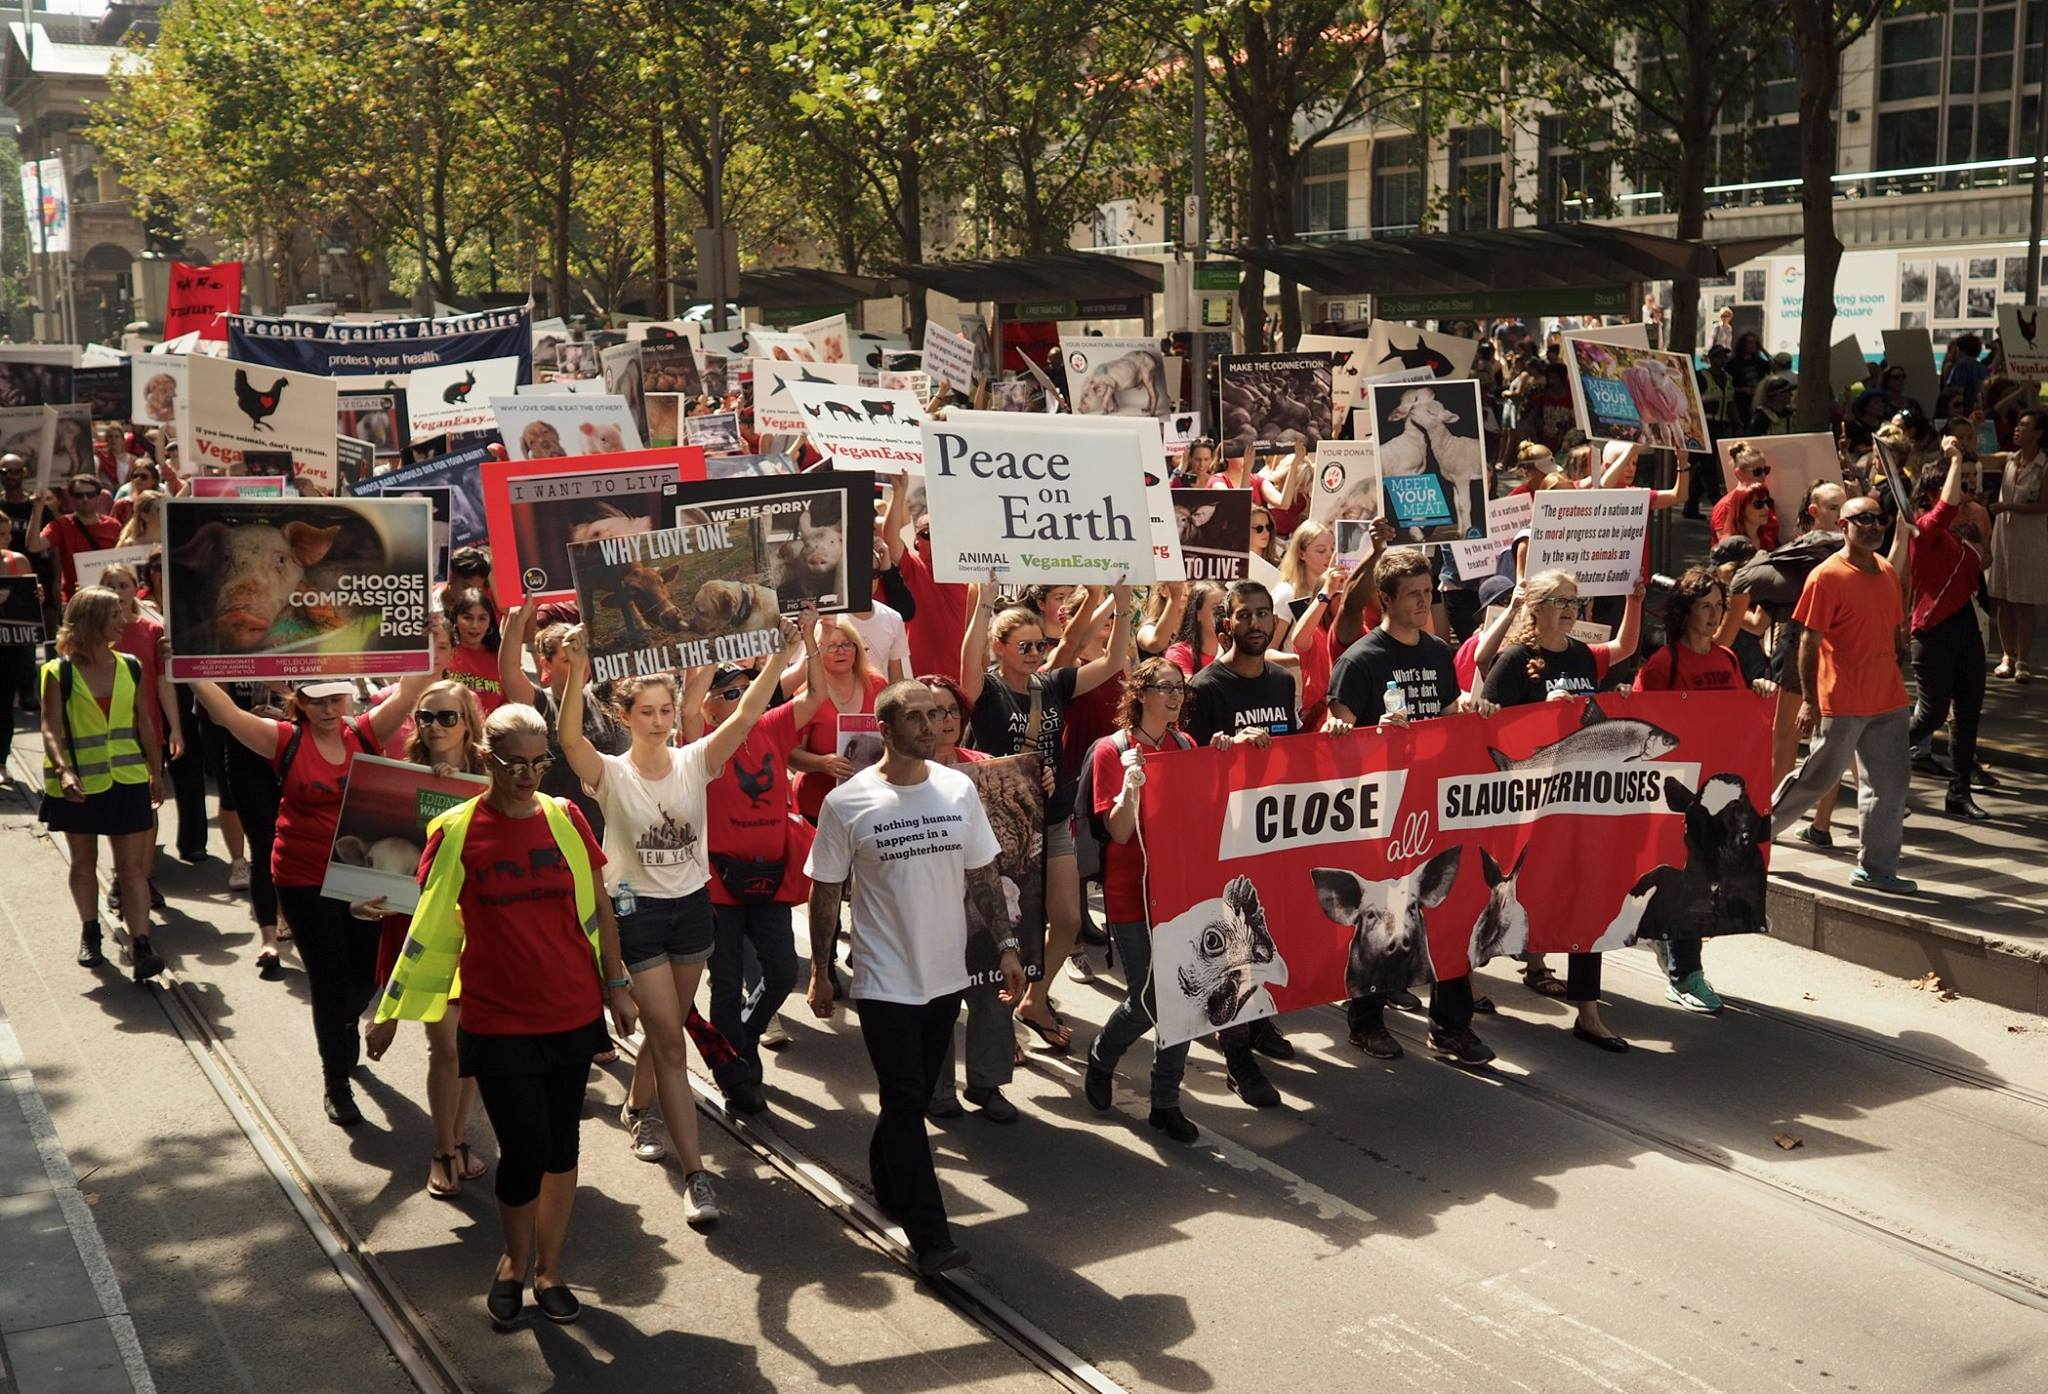 Melbourne March To Close All Slaughterhouses 2017 picture